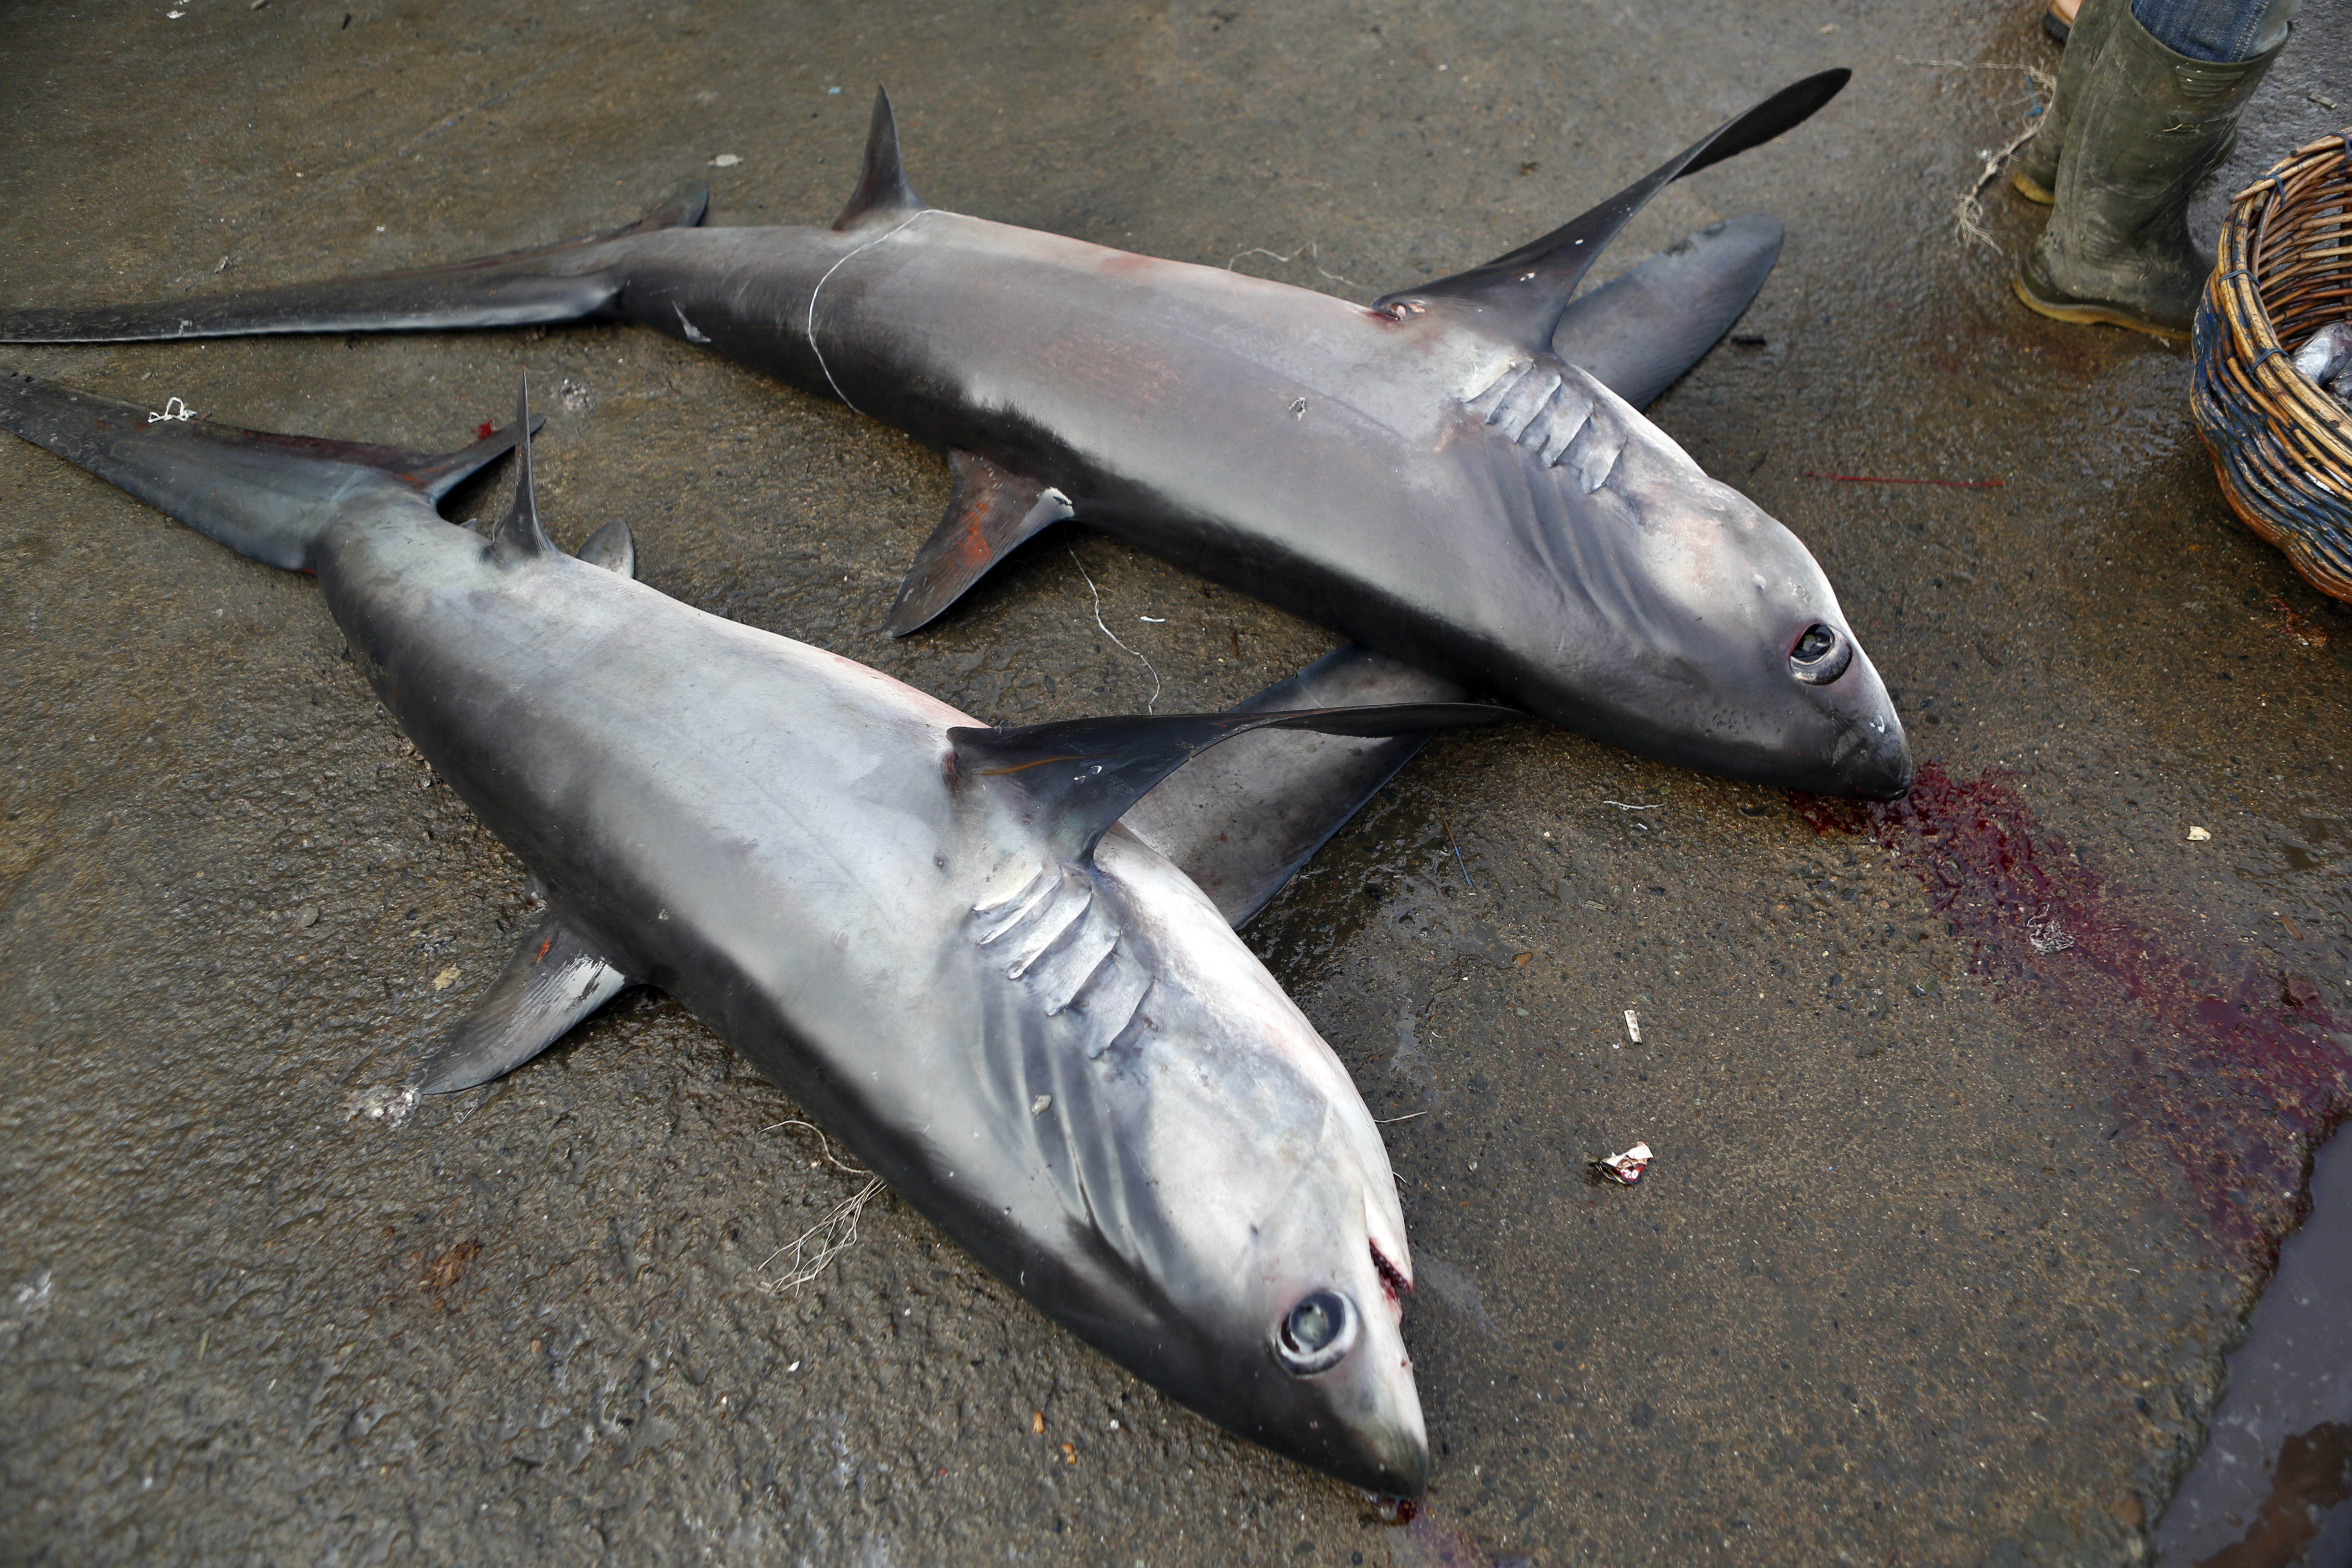 The makings of a shark fin soup.